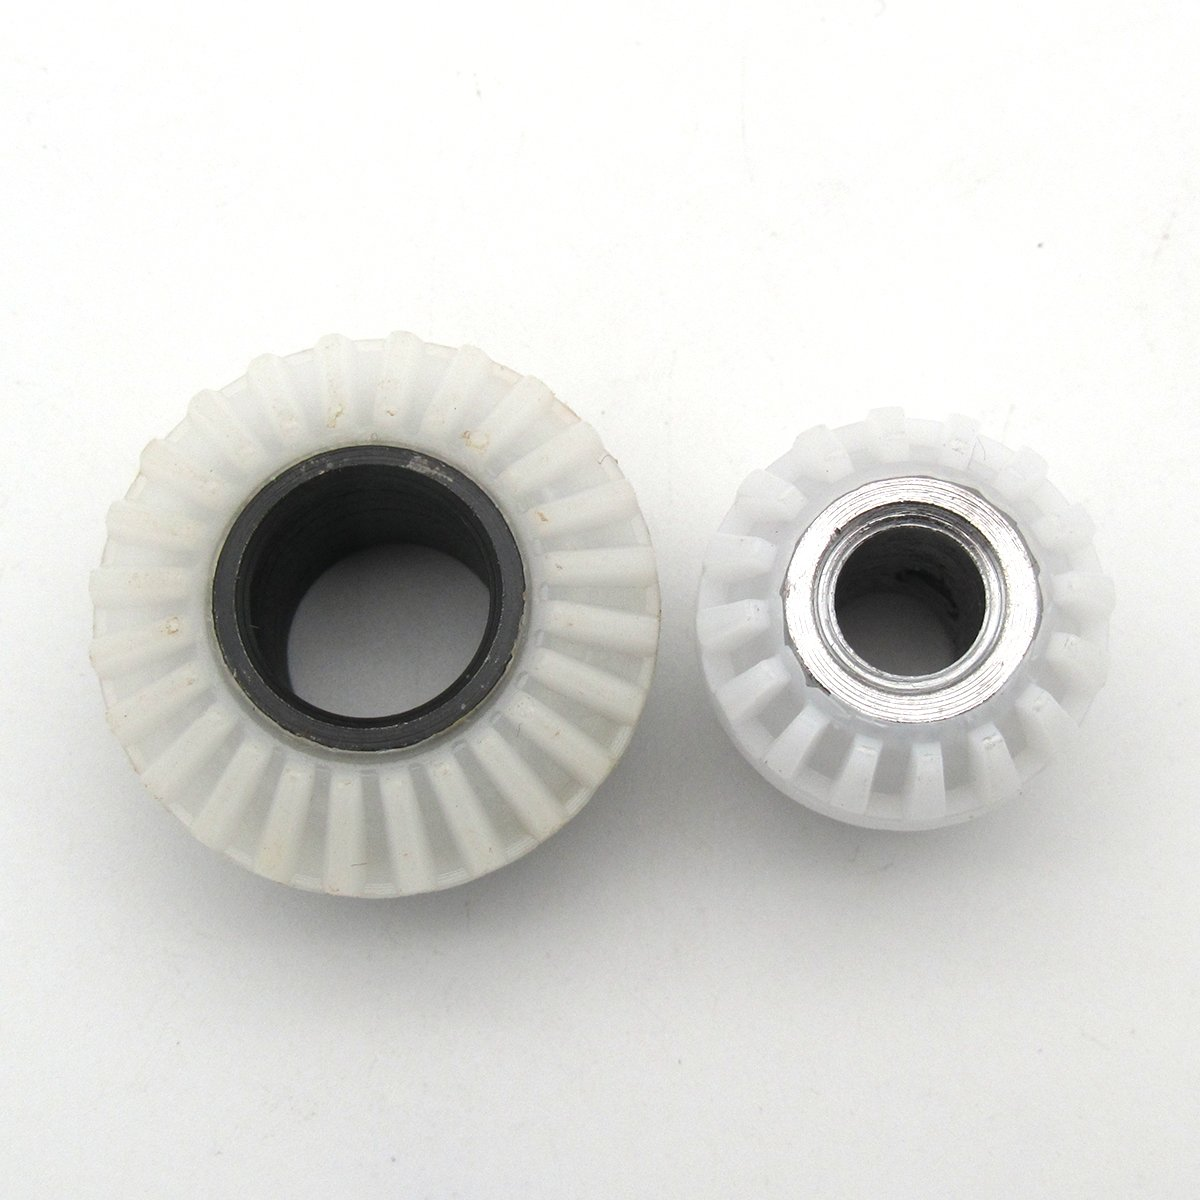 Hook Gear Set #103361AS Fits Singer 500 /& 800 513 533 534,833 834,6105 6136+